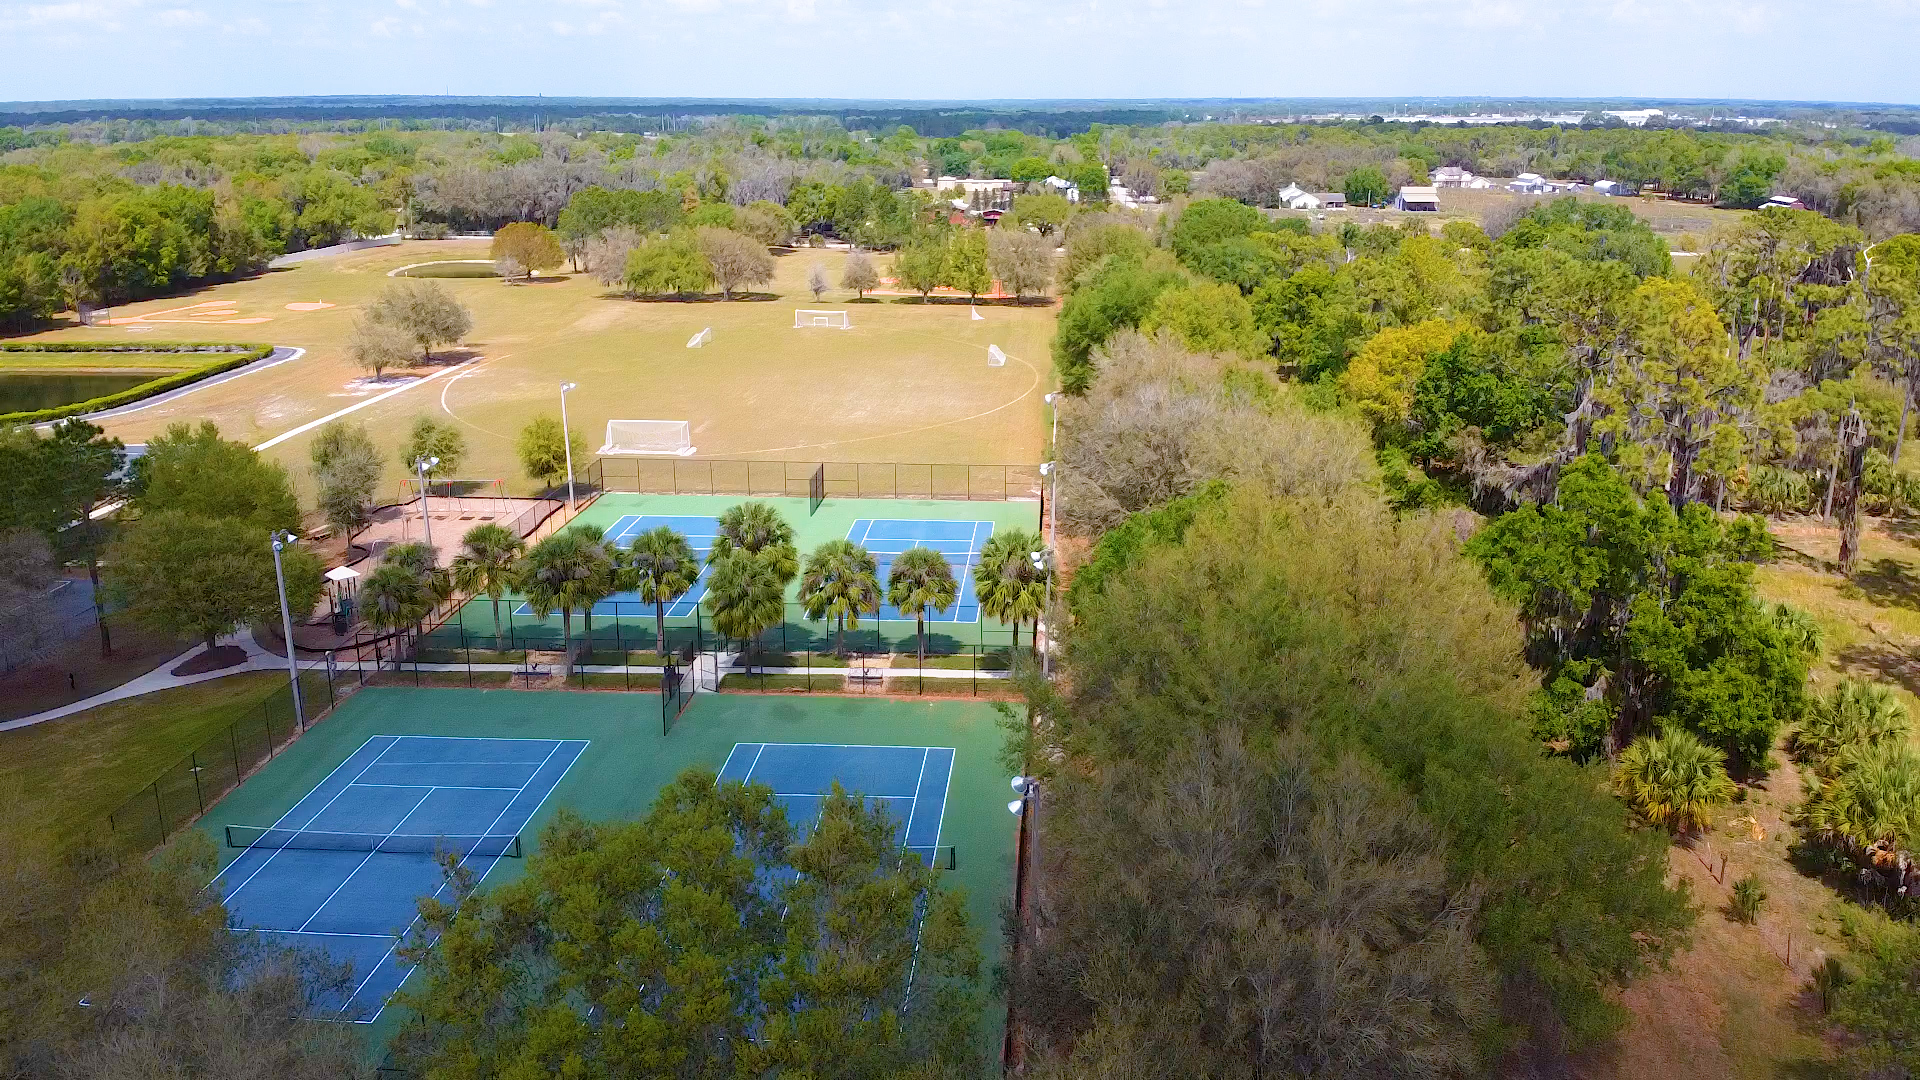 Drove view of the Fish Hawk Trails tennis courts and soccer fields